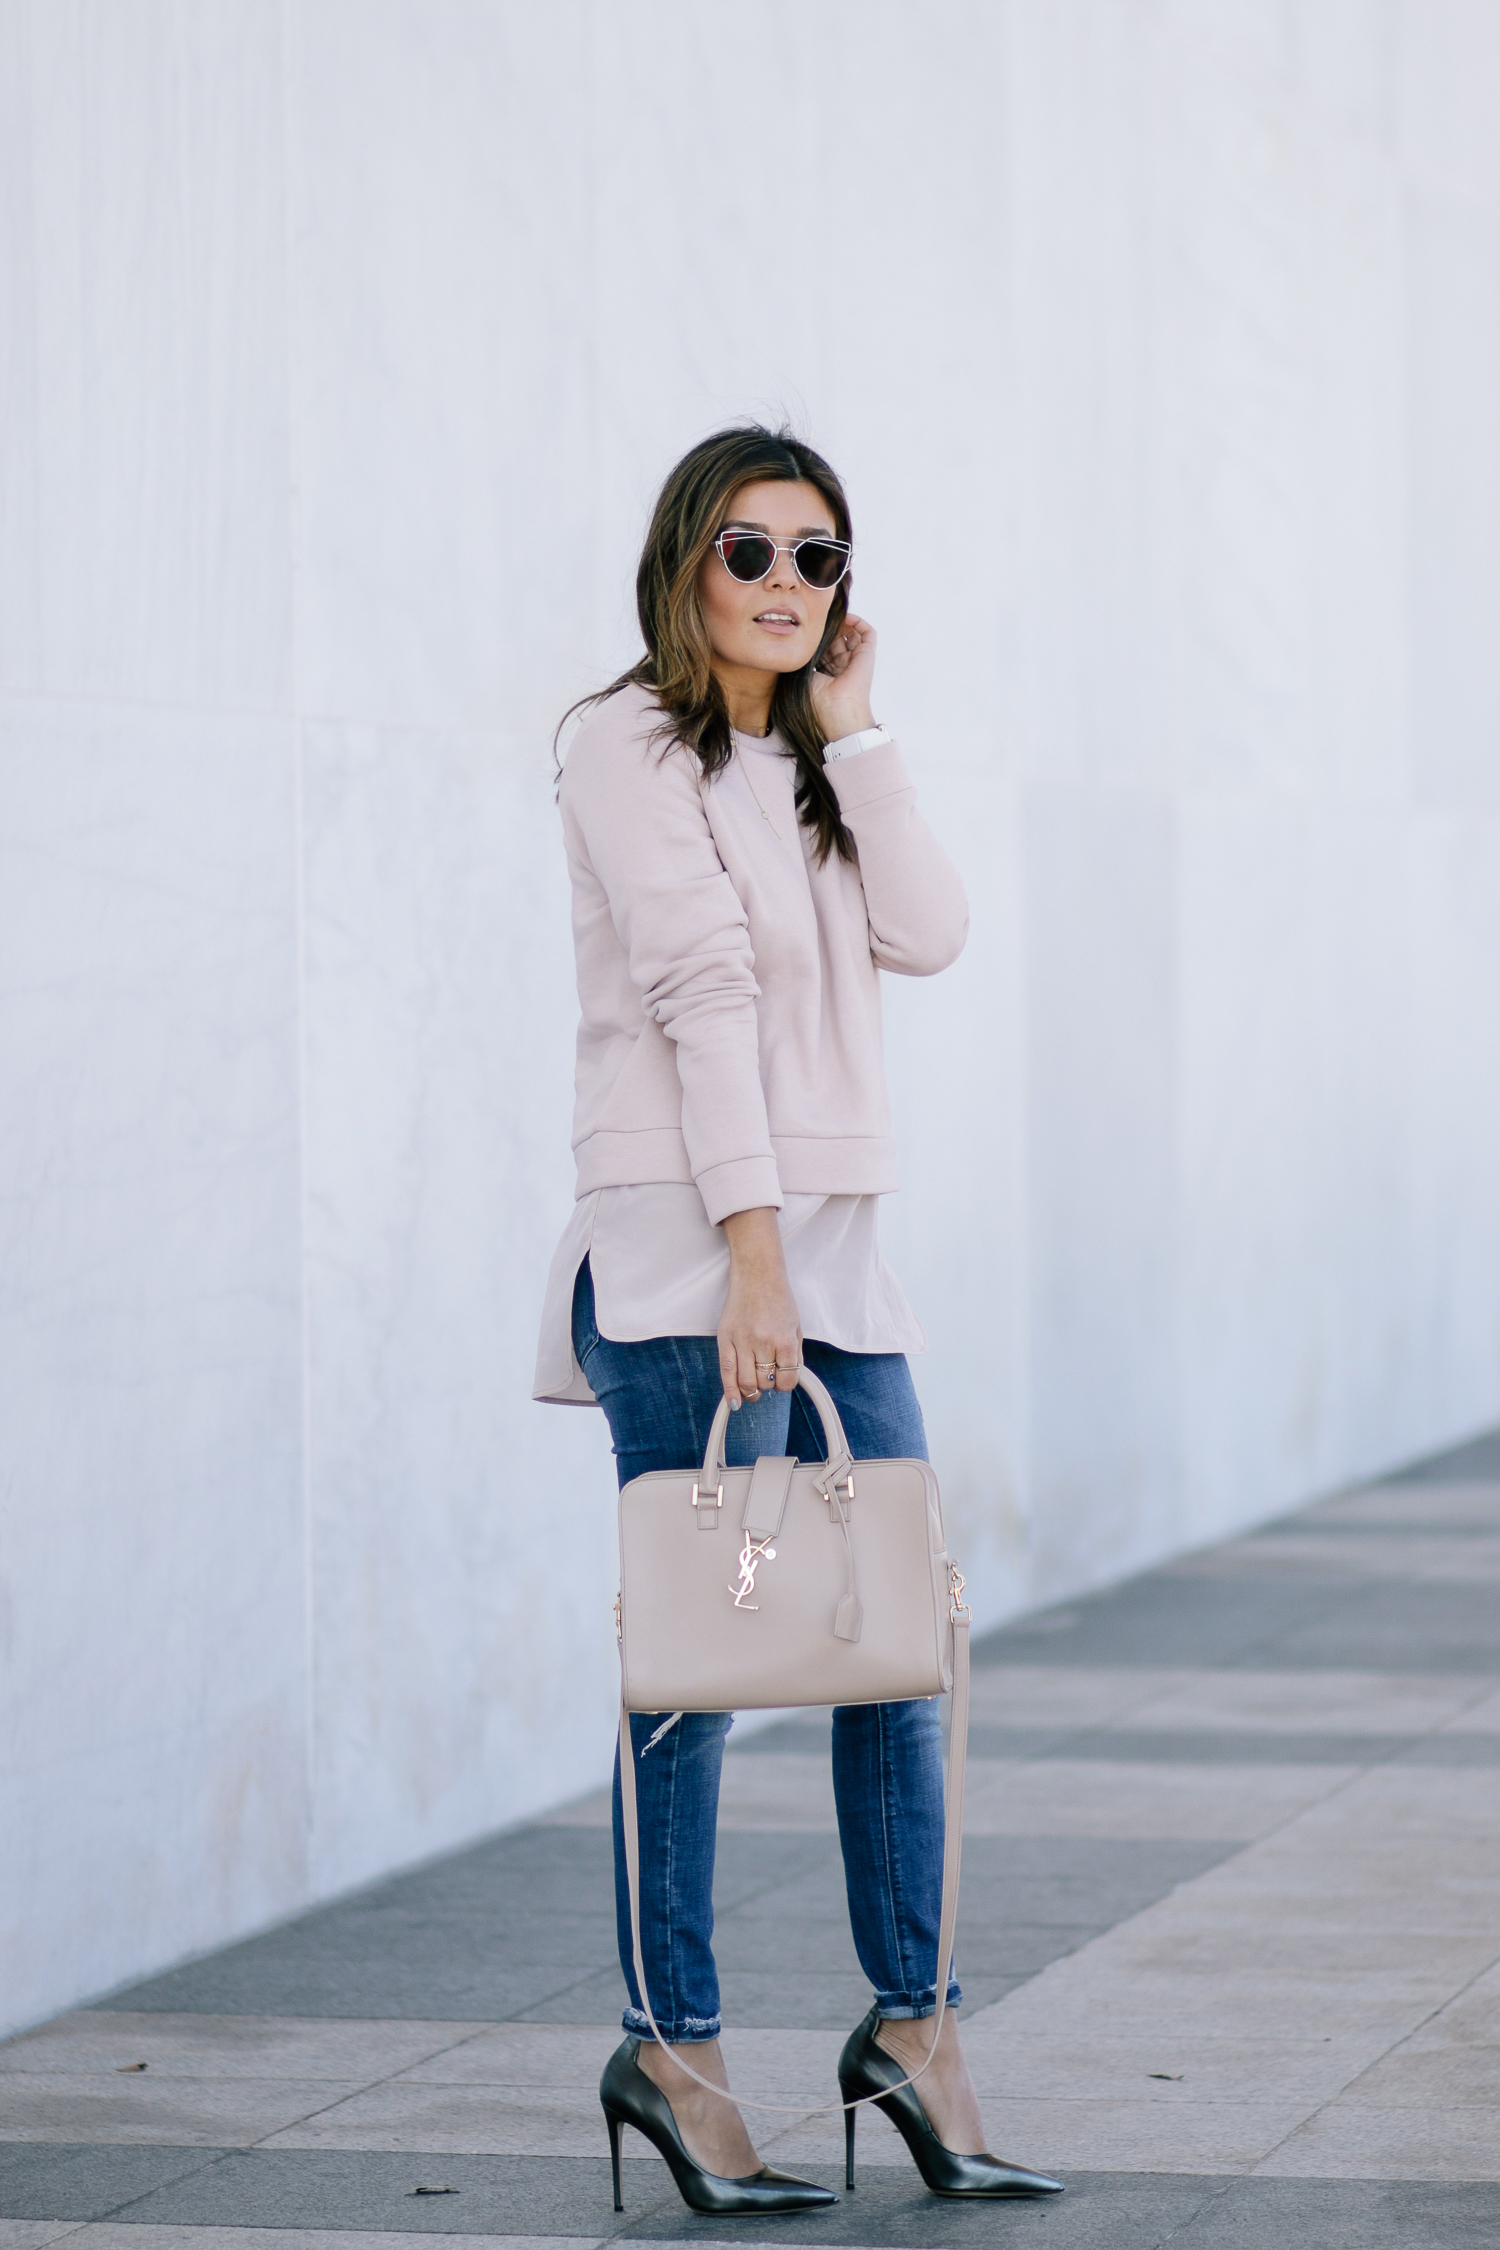 Blush Tones Look